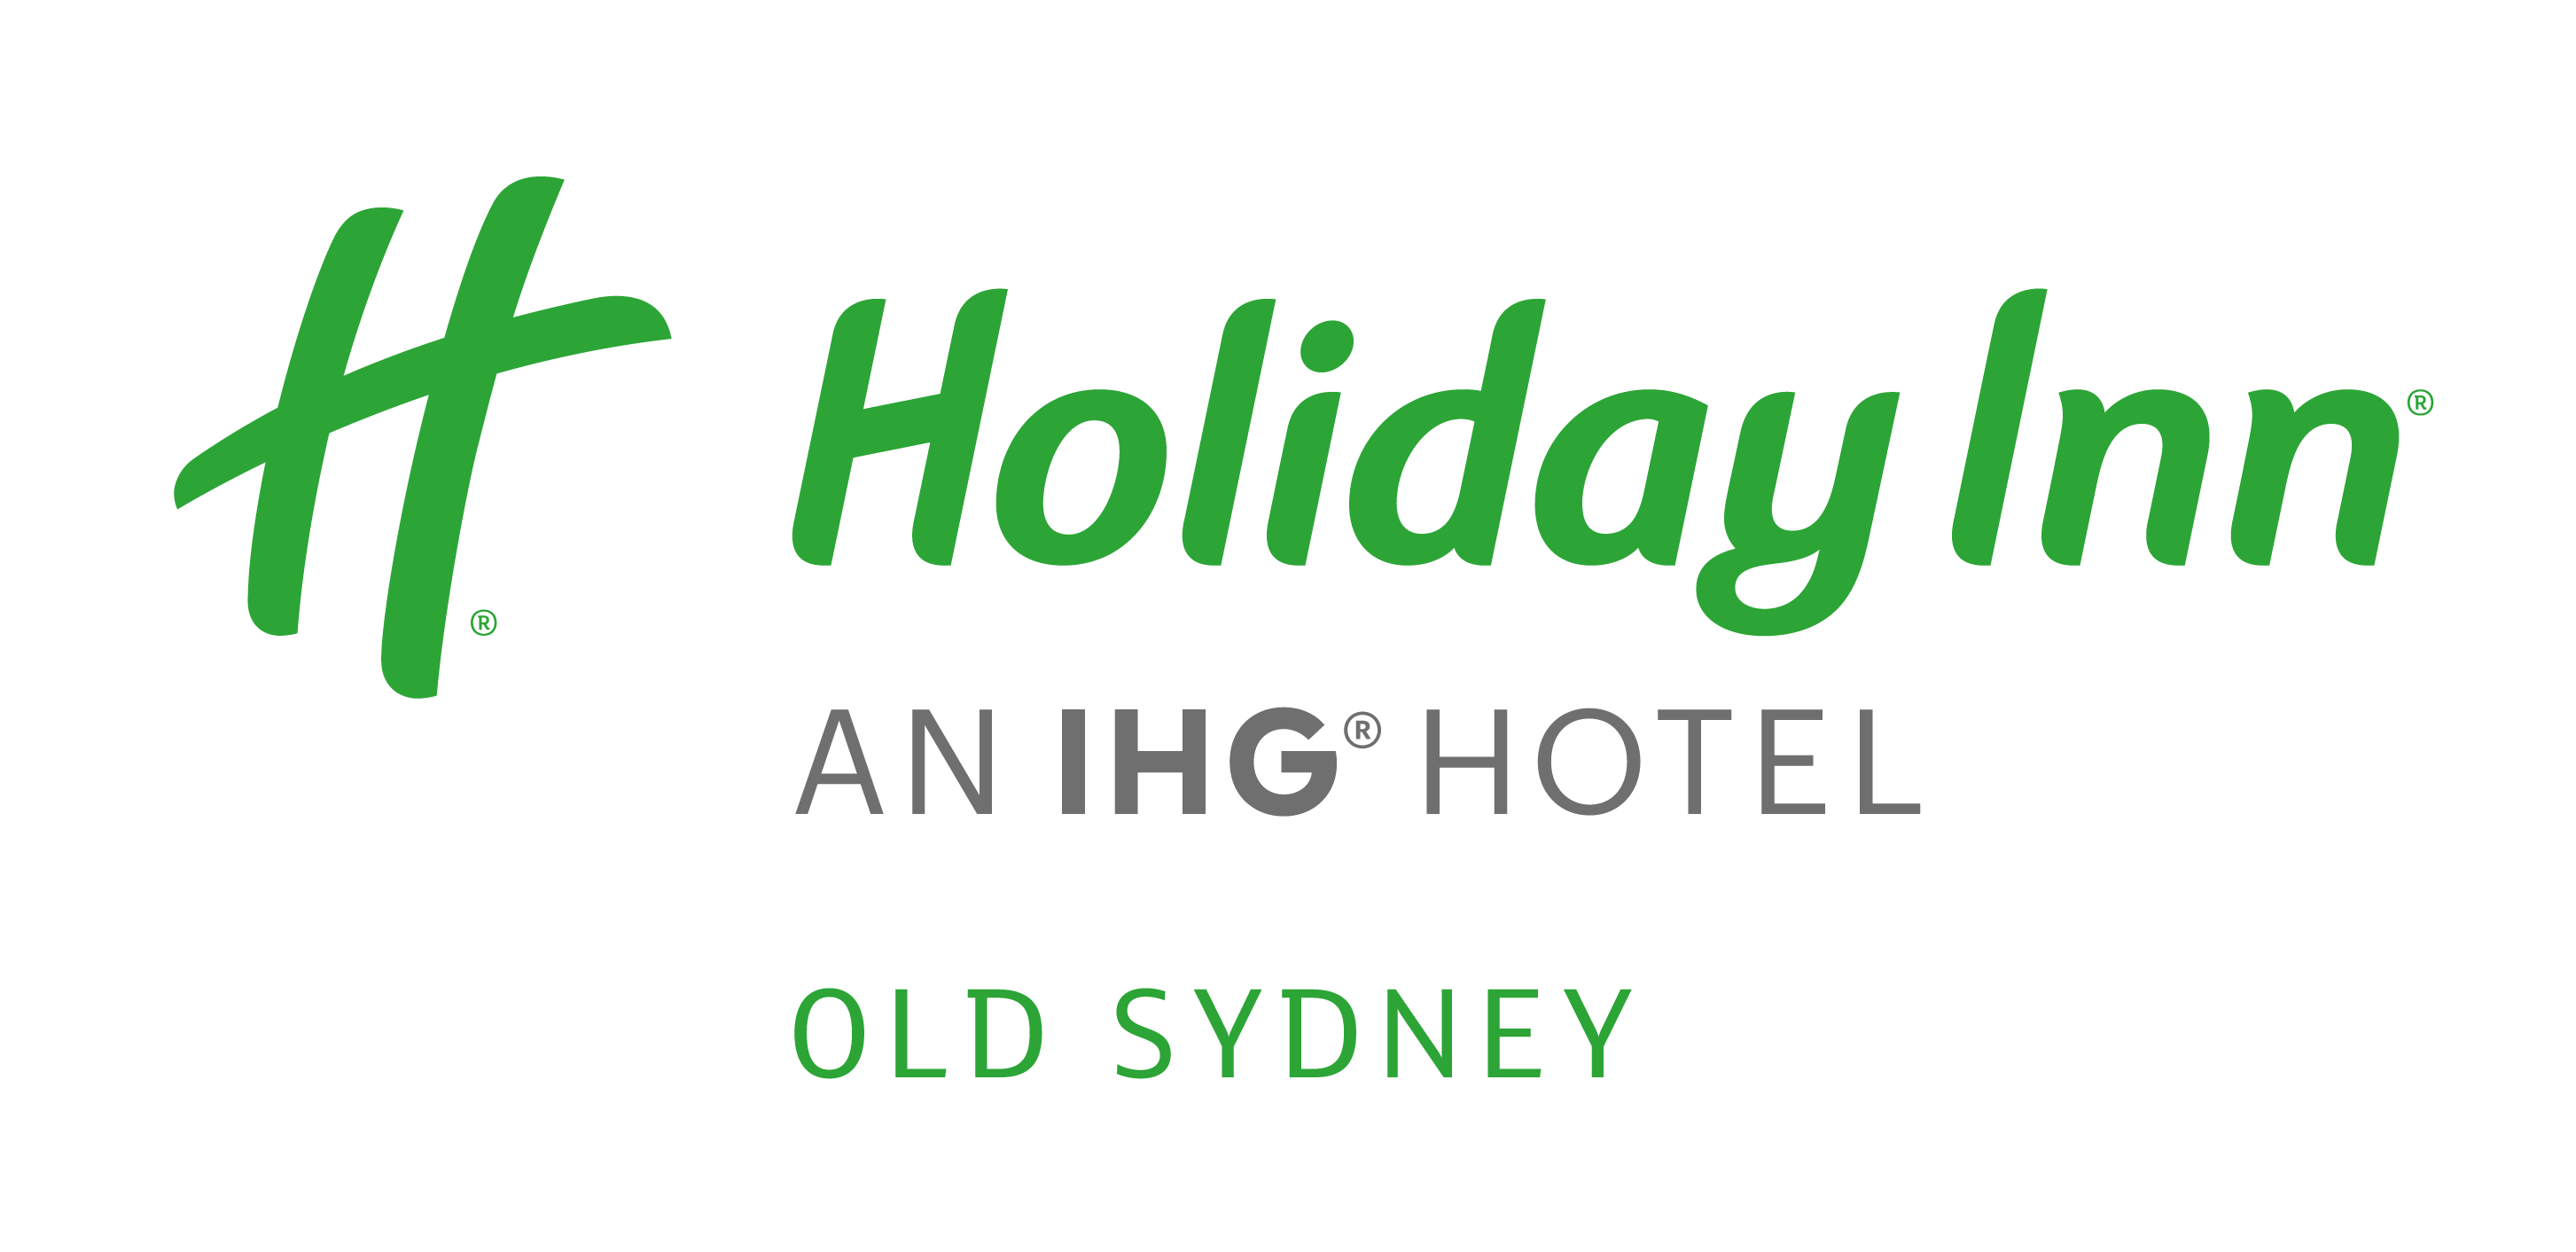 Holiday inn png. Old sydney s cmyk